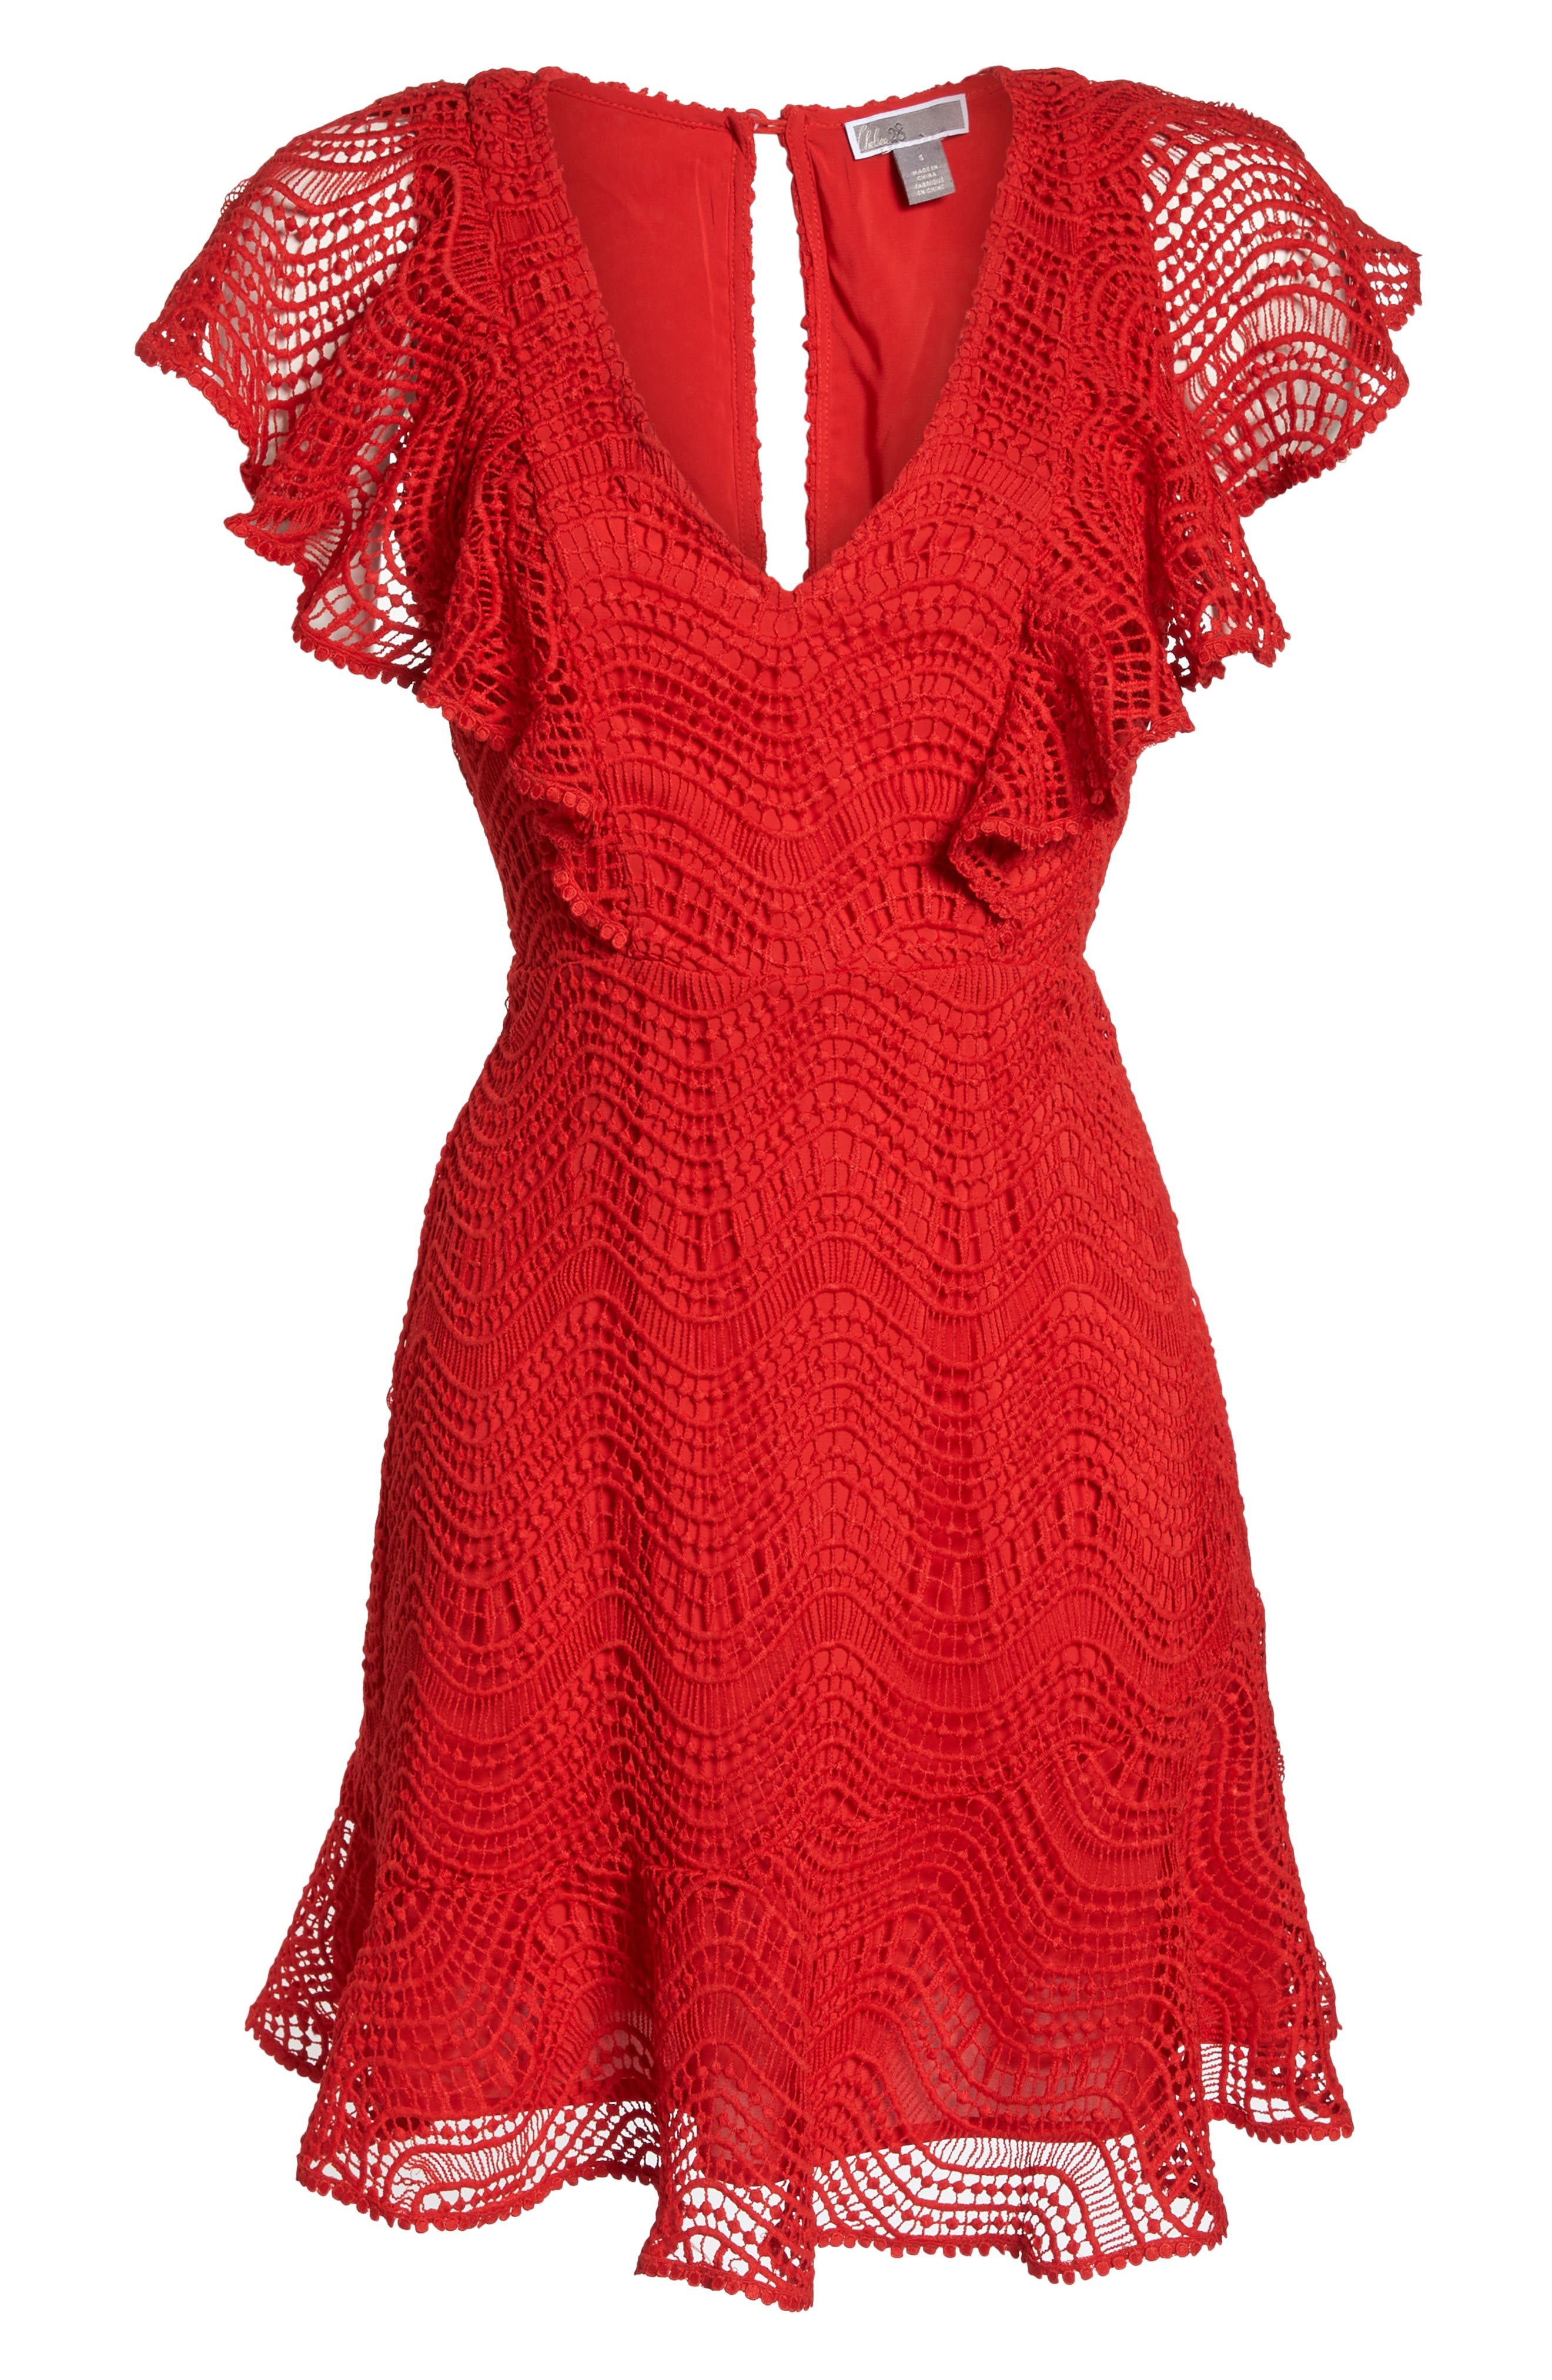 Ruffle Sleeve Lace Fit & Flare Dress,                             Alternate thumbnail 7, color,                             Red Blaze